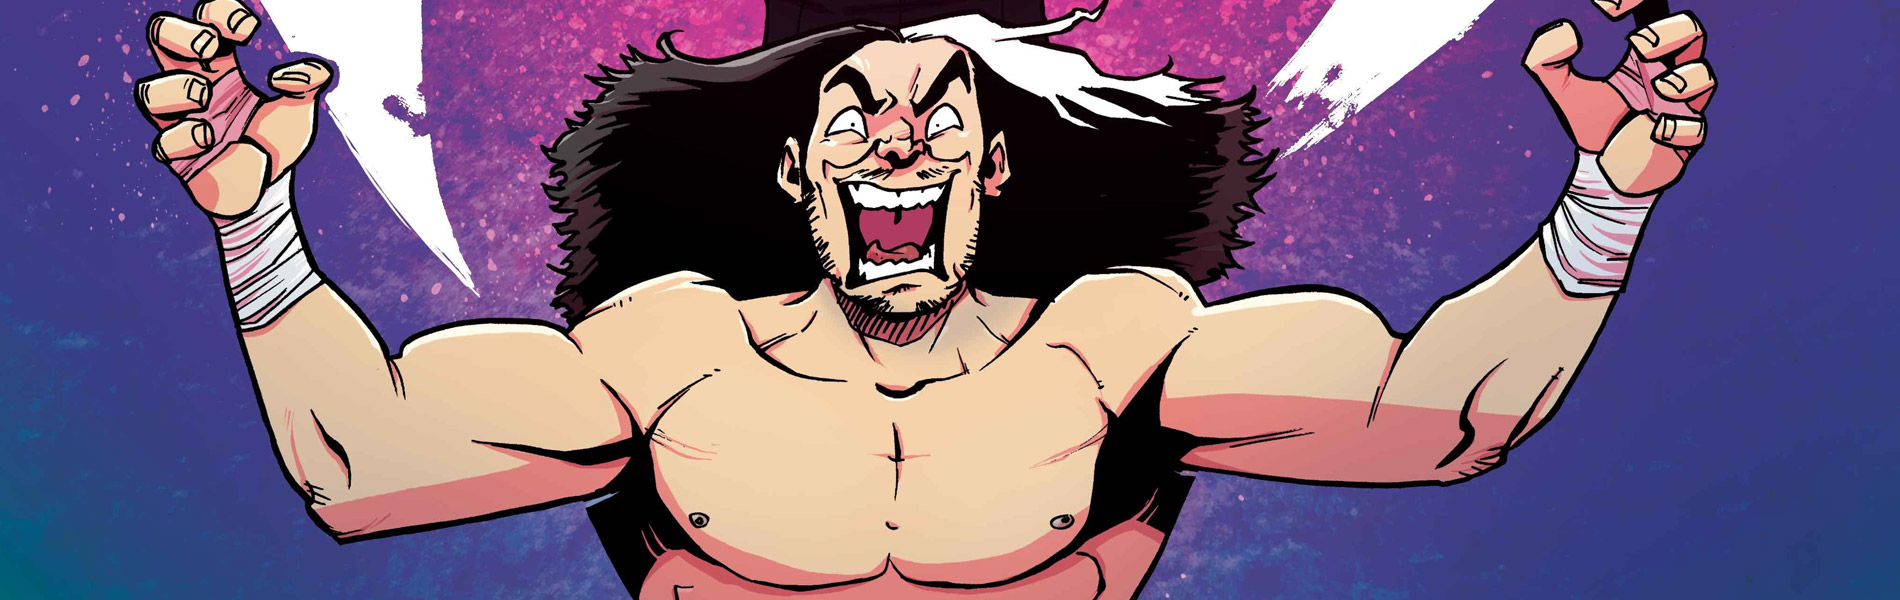 God of Comics – WWE Royal Rumble 2018 Special #1